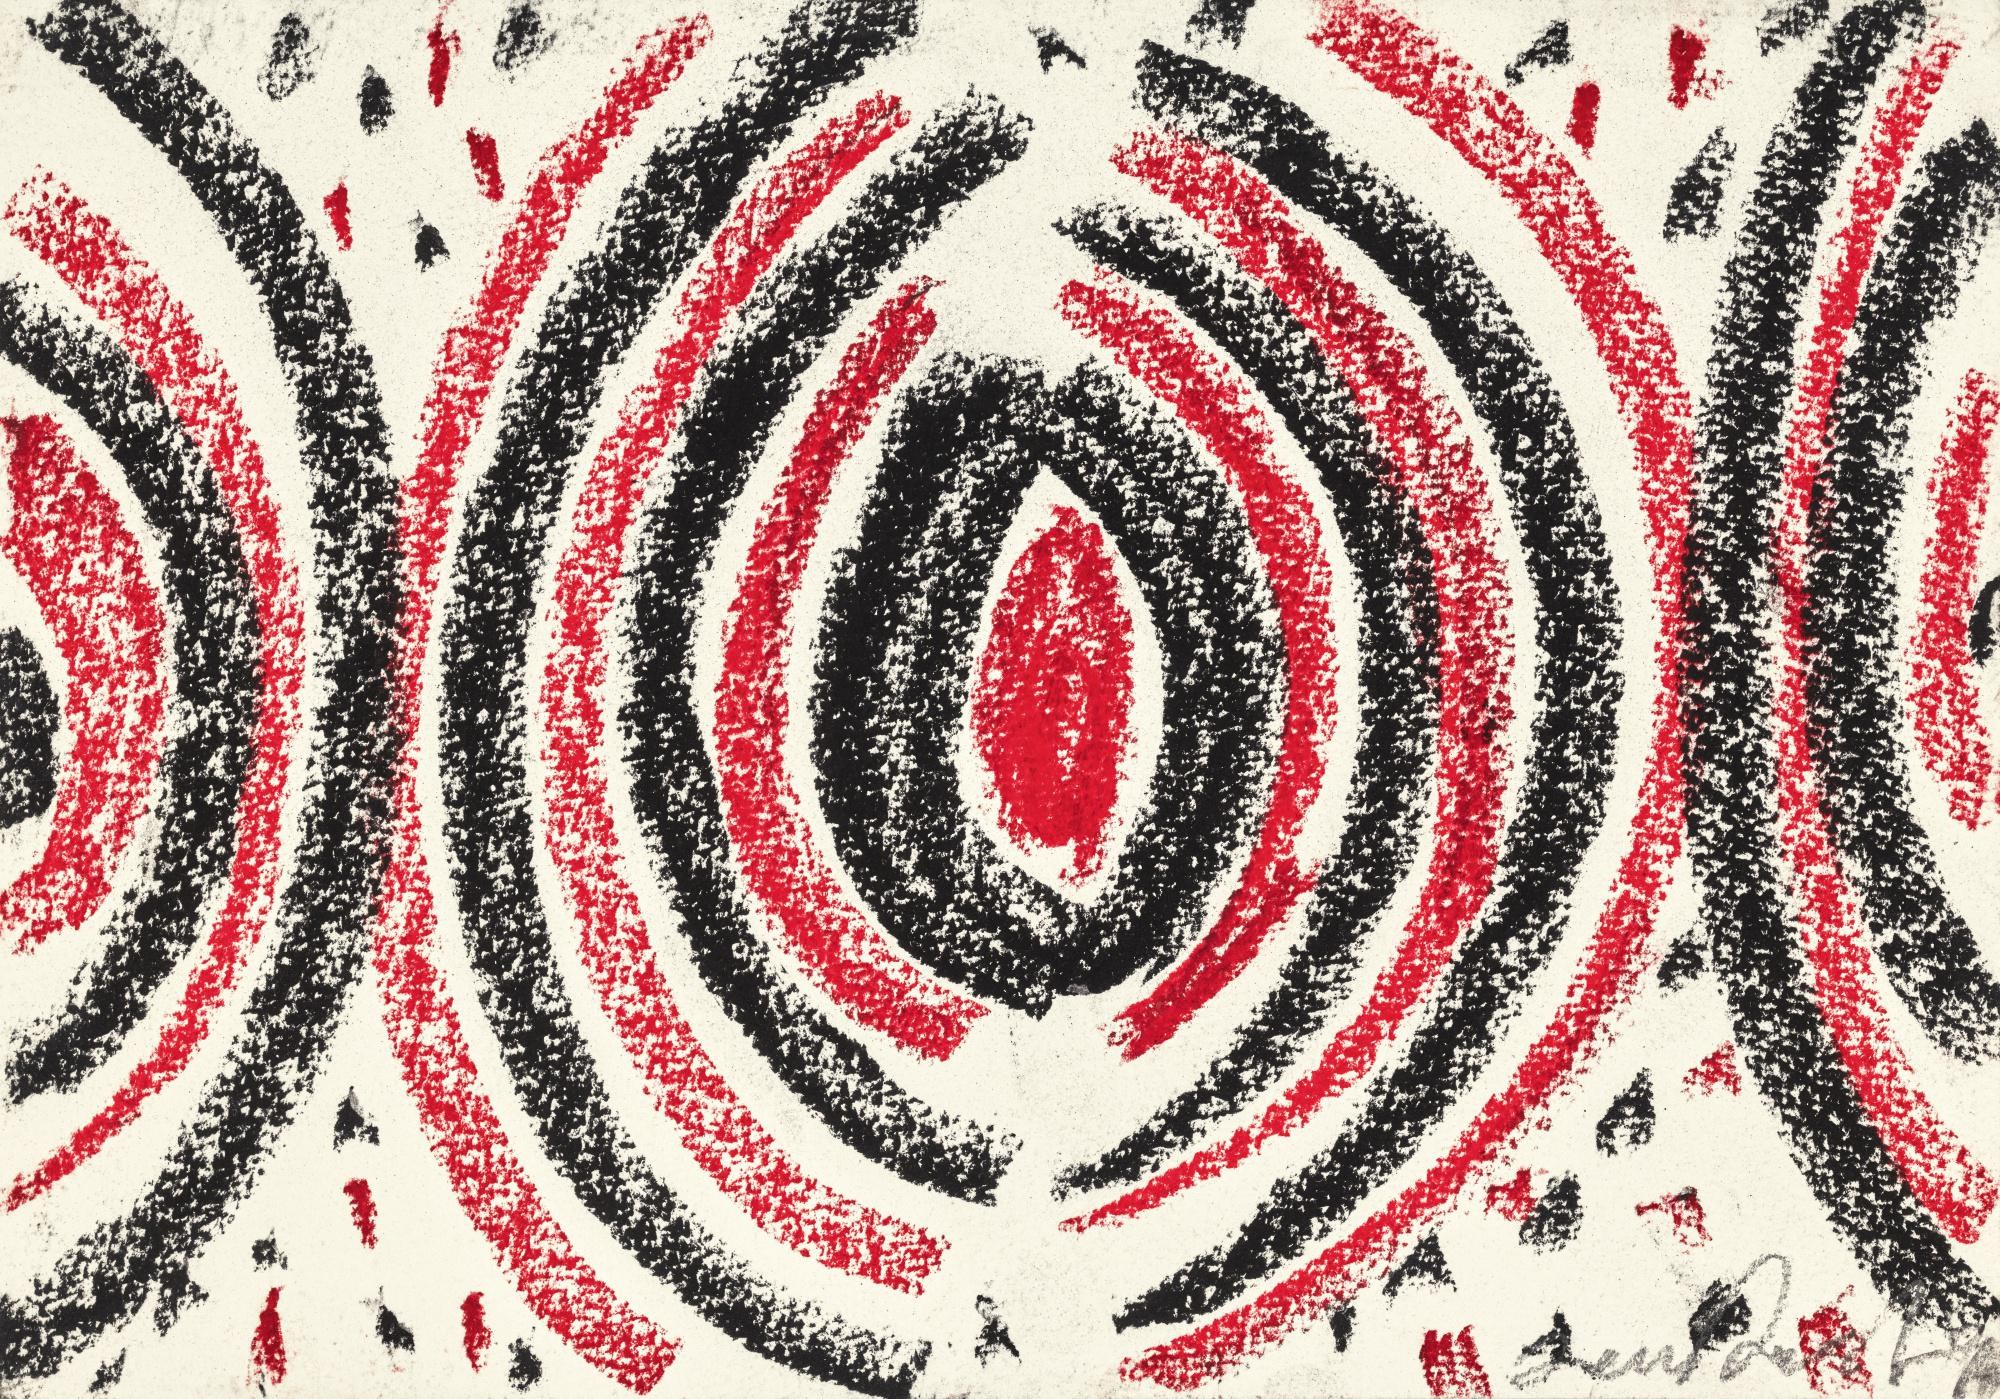 SIR TERRY FROST, R.A.   SUSPENDED FORMS; AND RED AND BLACK